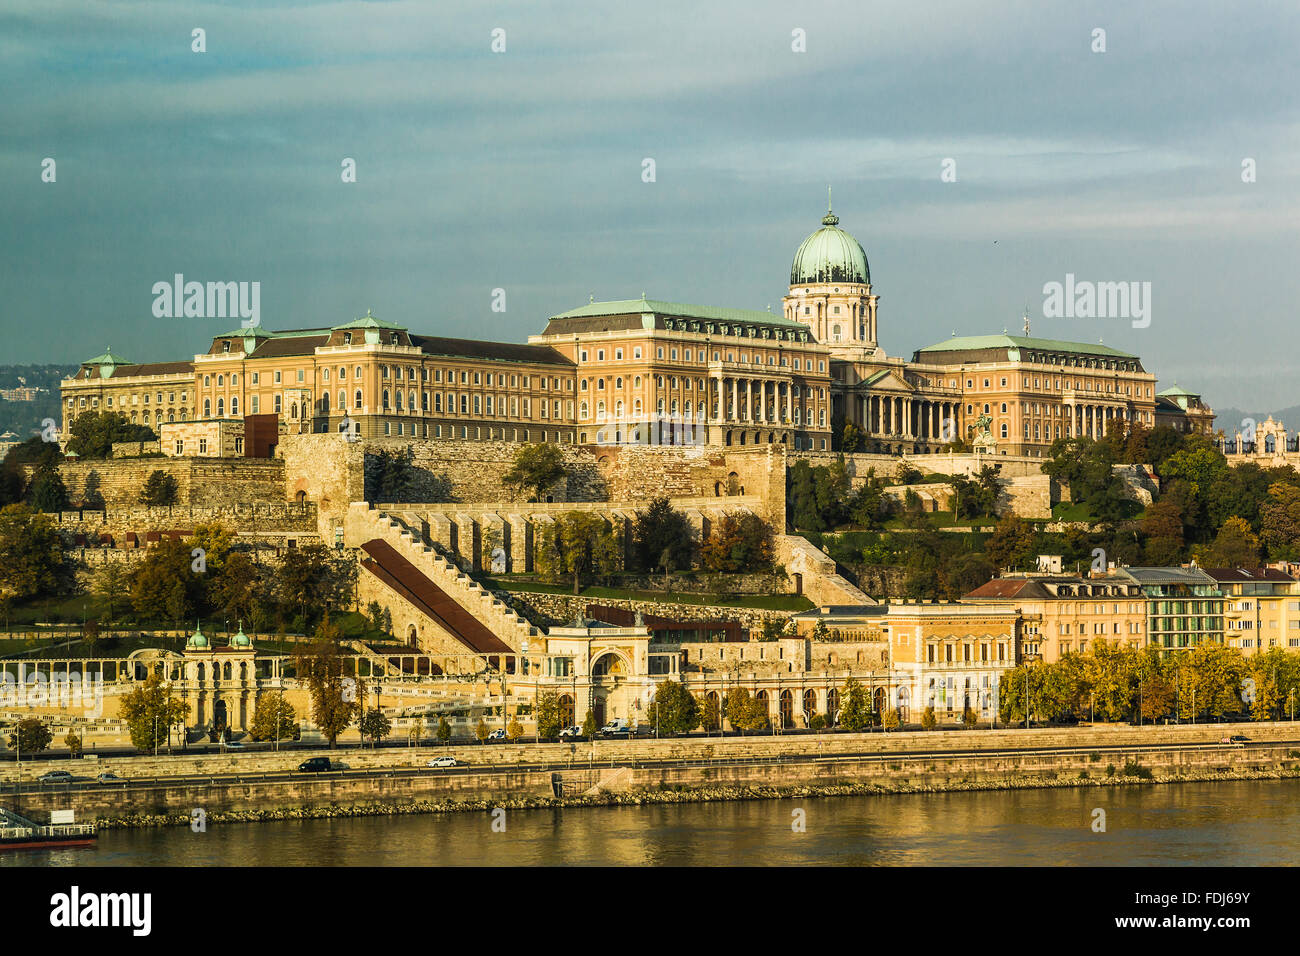 Royal Palace, Budapest, Hungary Stock Photo